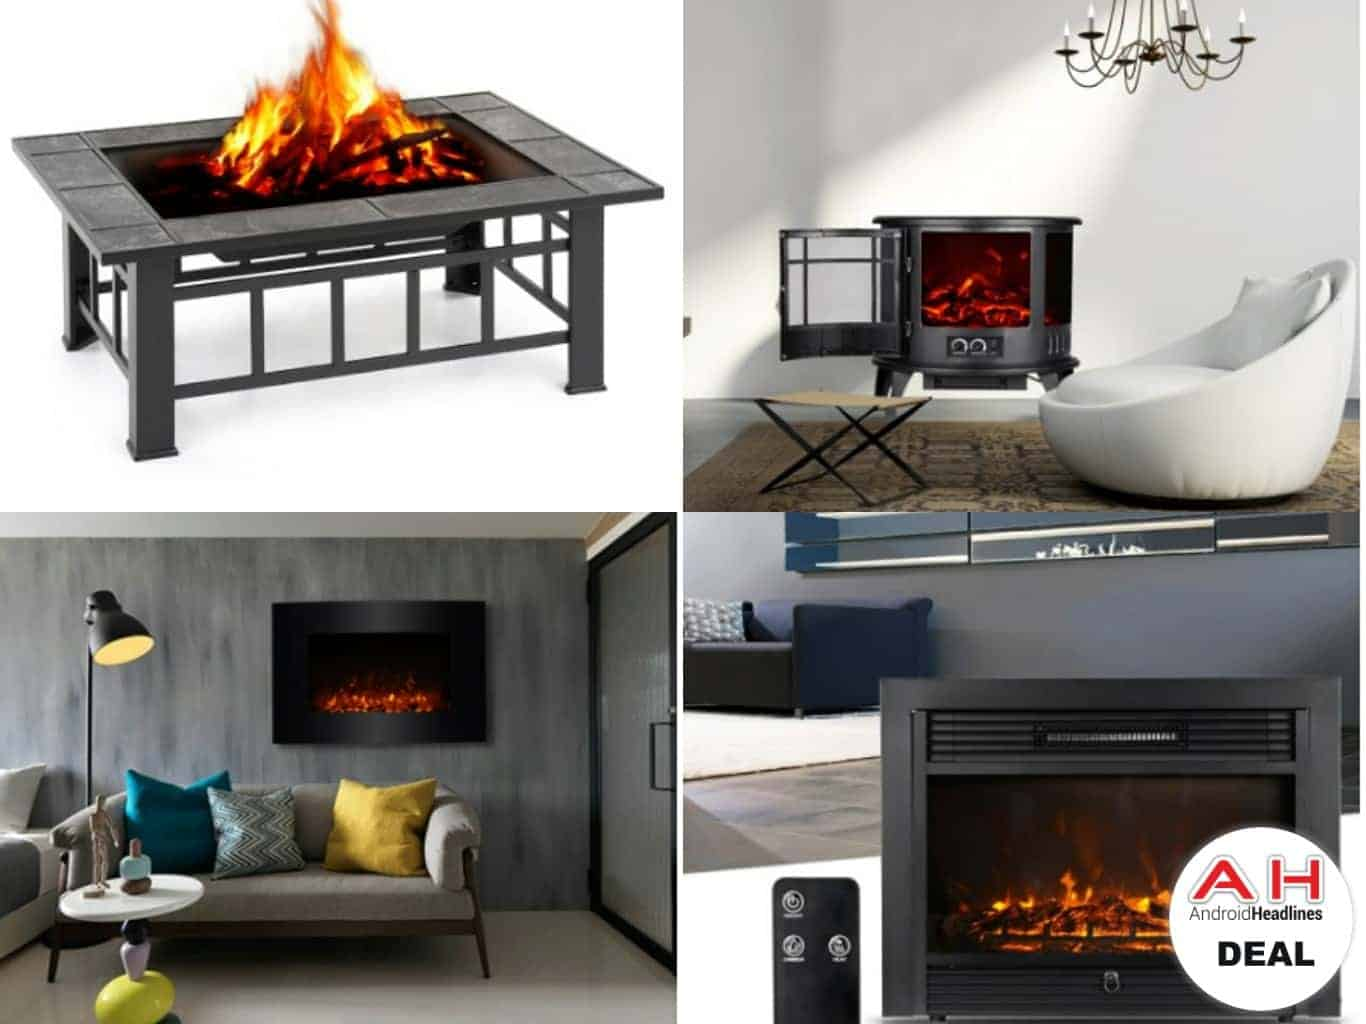 faux recessed enterprises realistic fireplace unit tv clearance decoration electric with tall for heater fireplaces insert in southern console media stone sale built